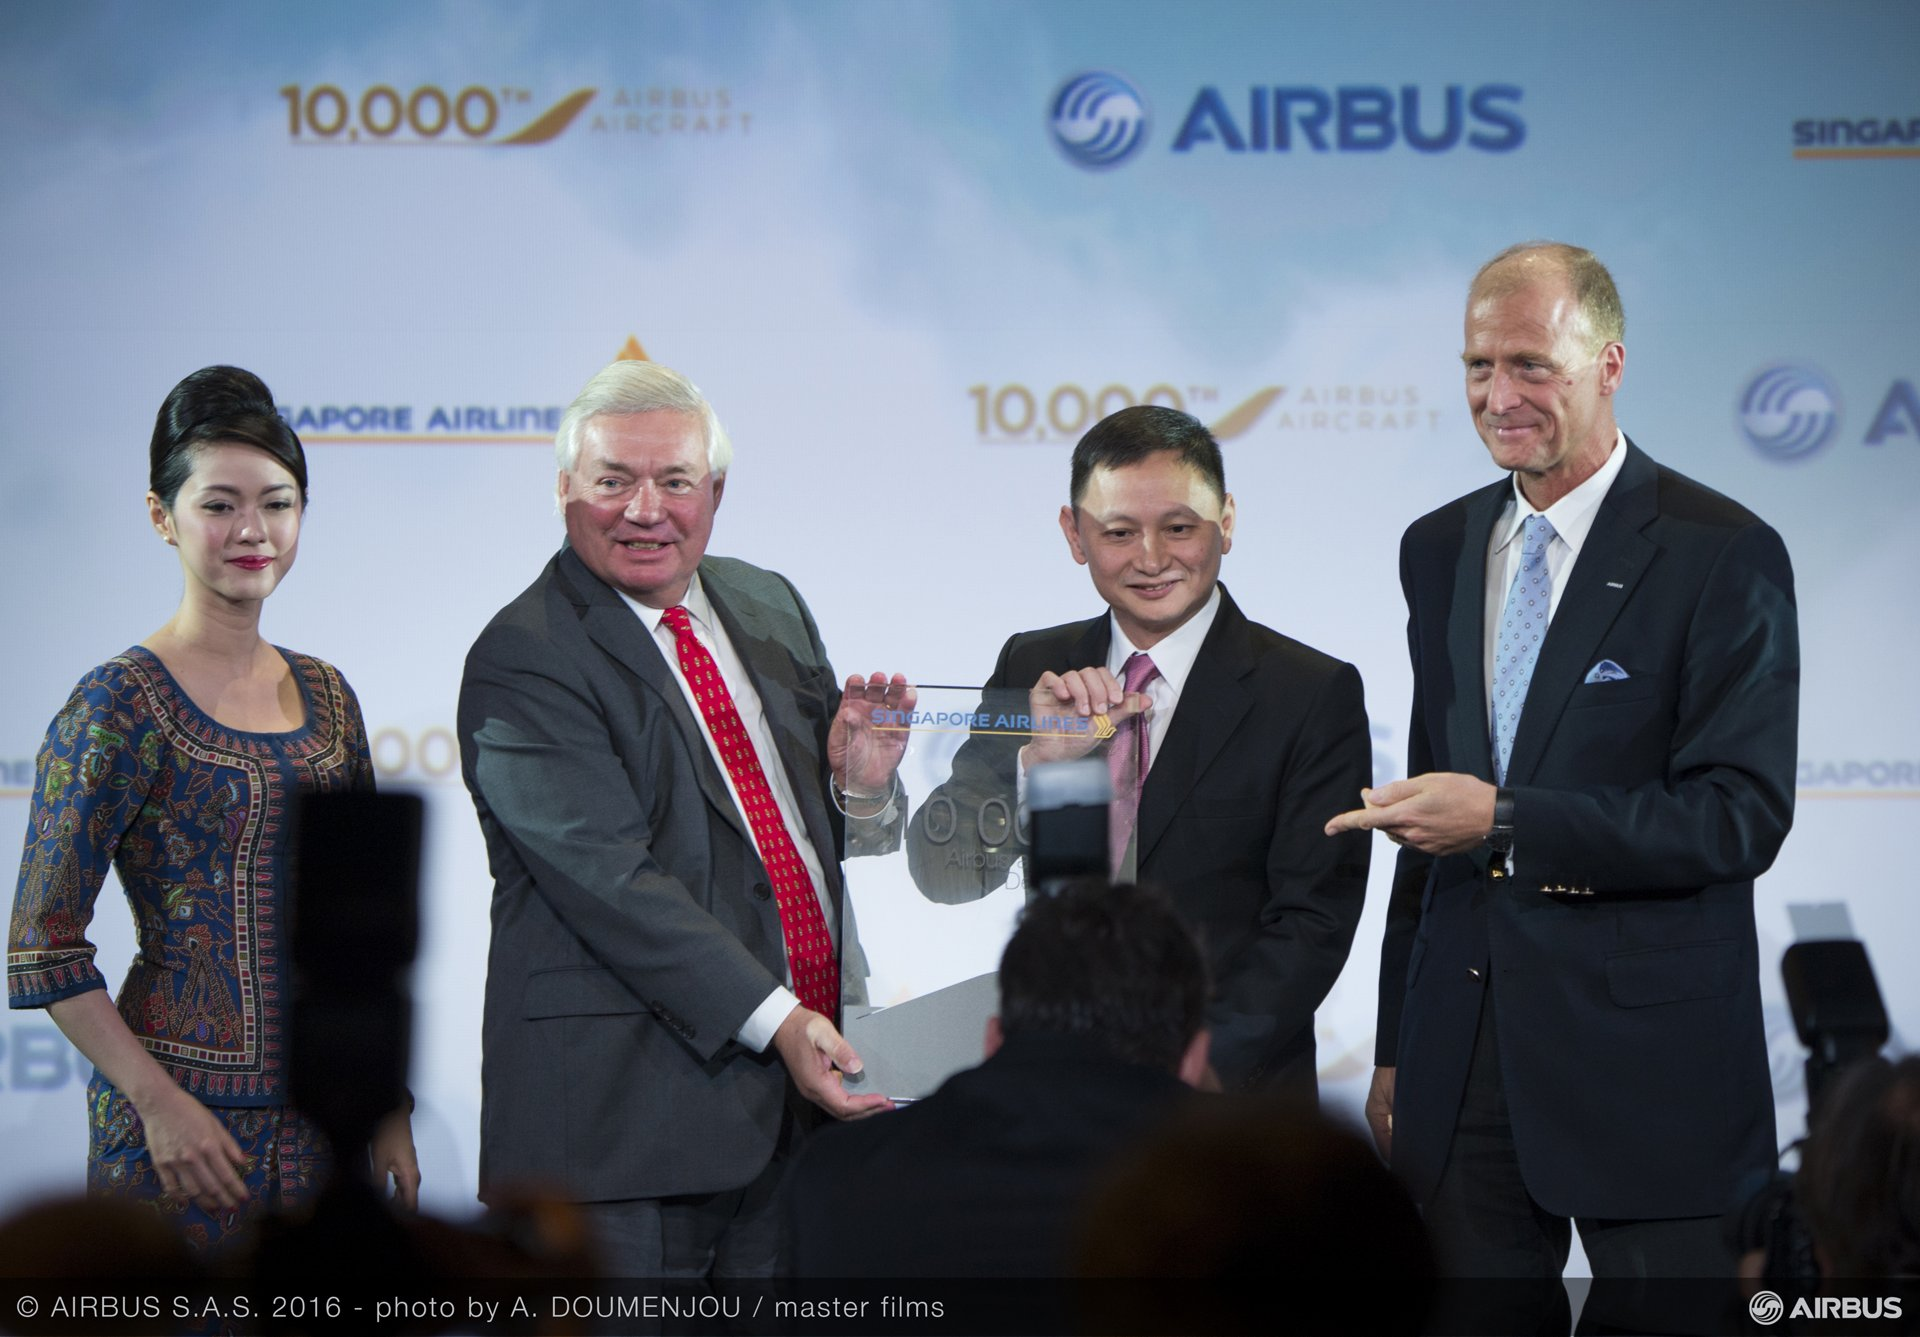 Airbus 10,000th delivery ceremony_2